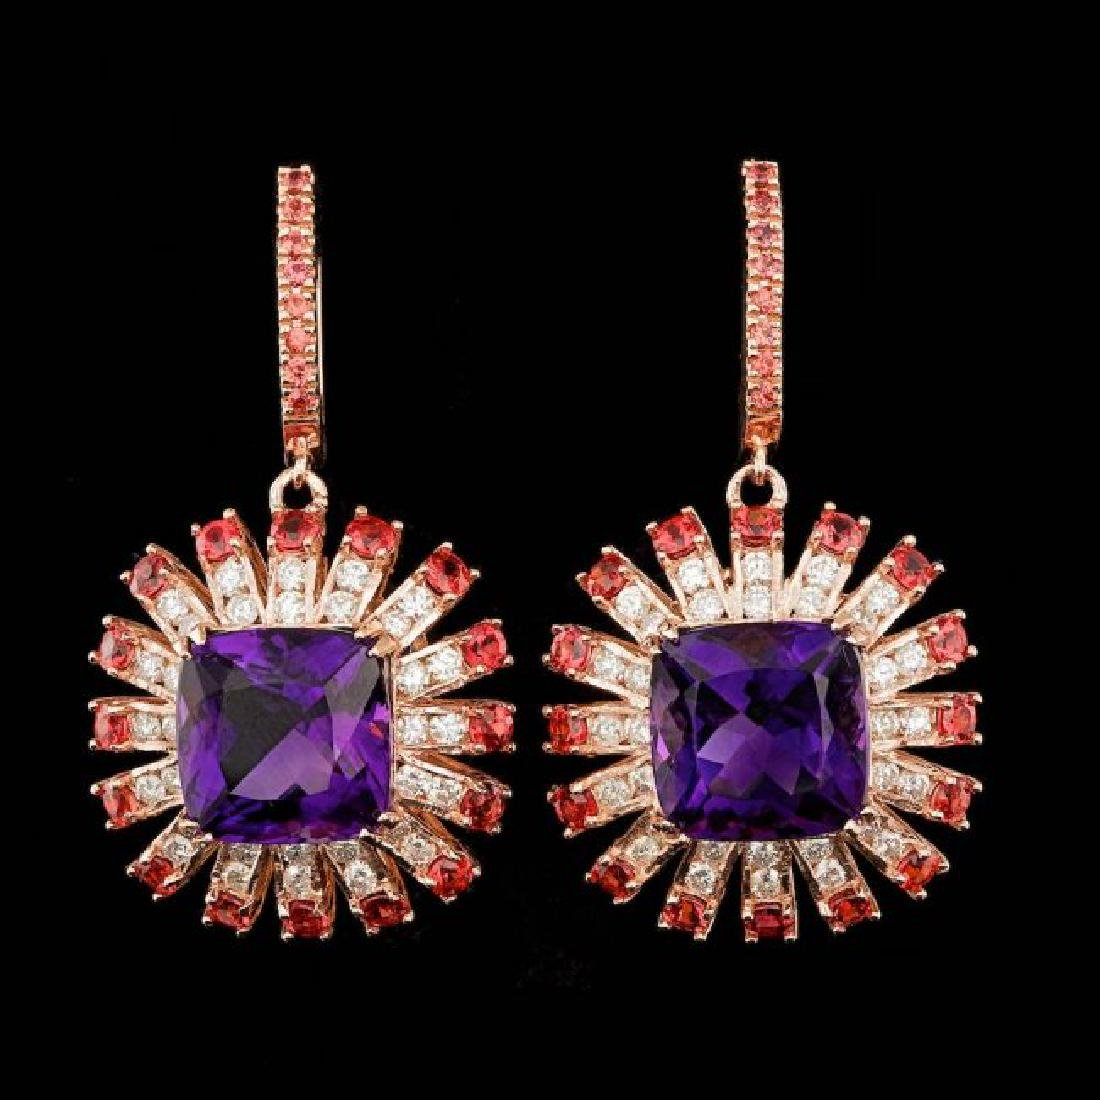 14k Rose 19.00ct Amethyst 2.00ct Diamond Earrings